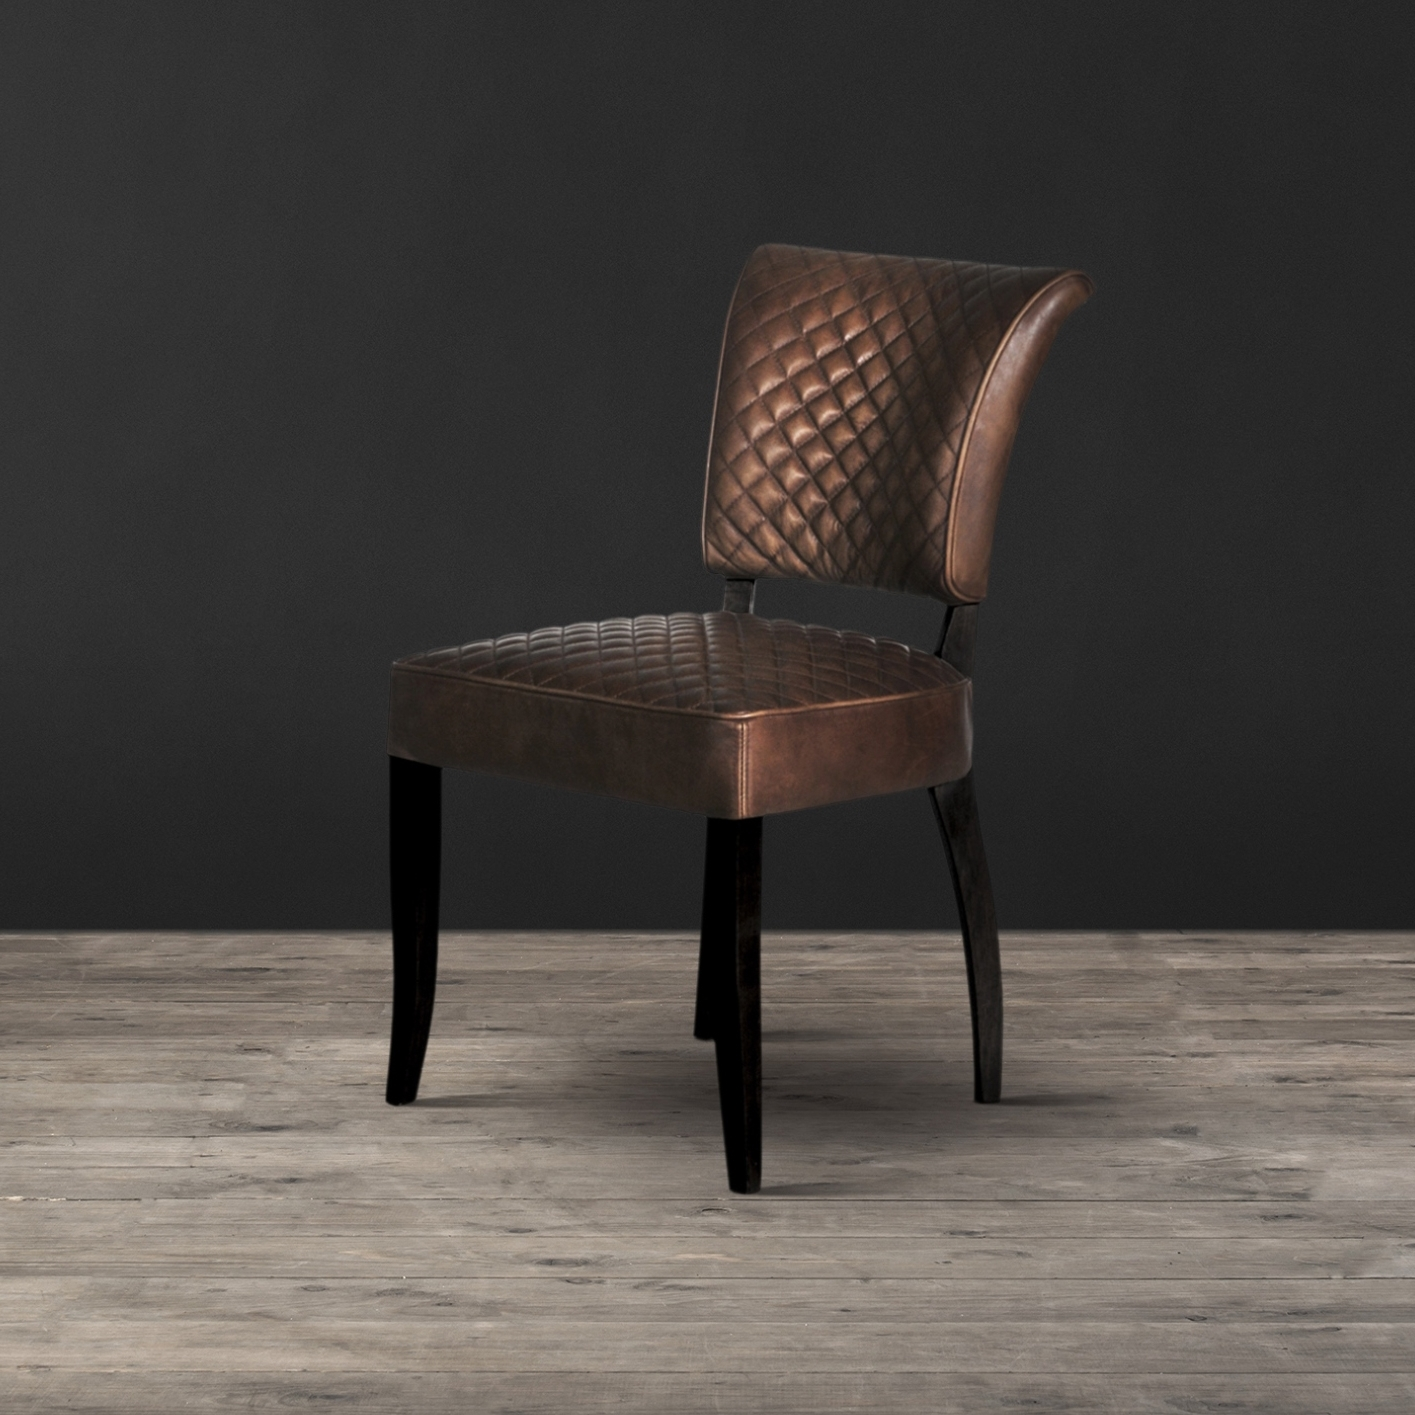 Quilted Brown Dining Chairs Intended For Newest Timothy Oulton Mimi Quilt Dining Chair – Black Oak Legs (View 12 of 20)